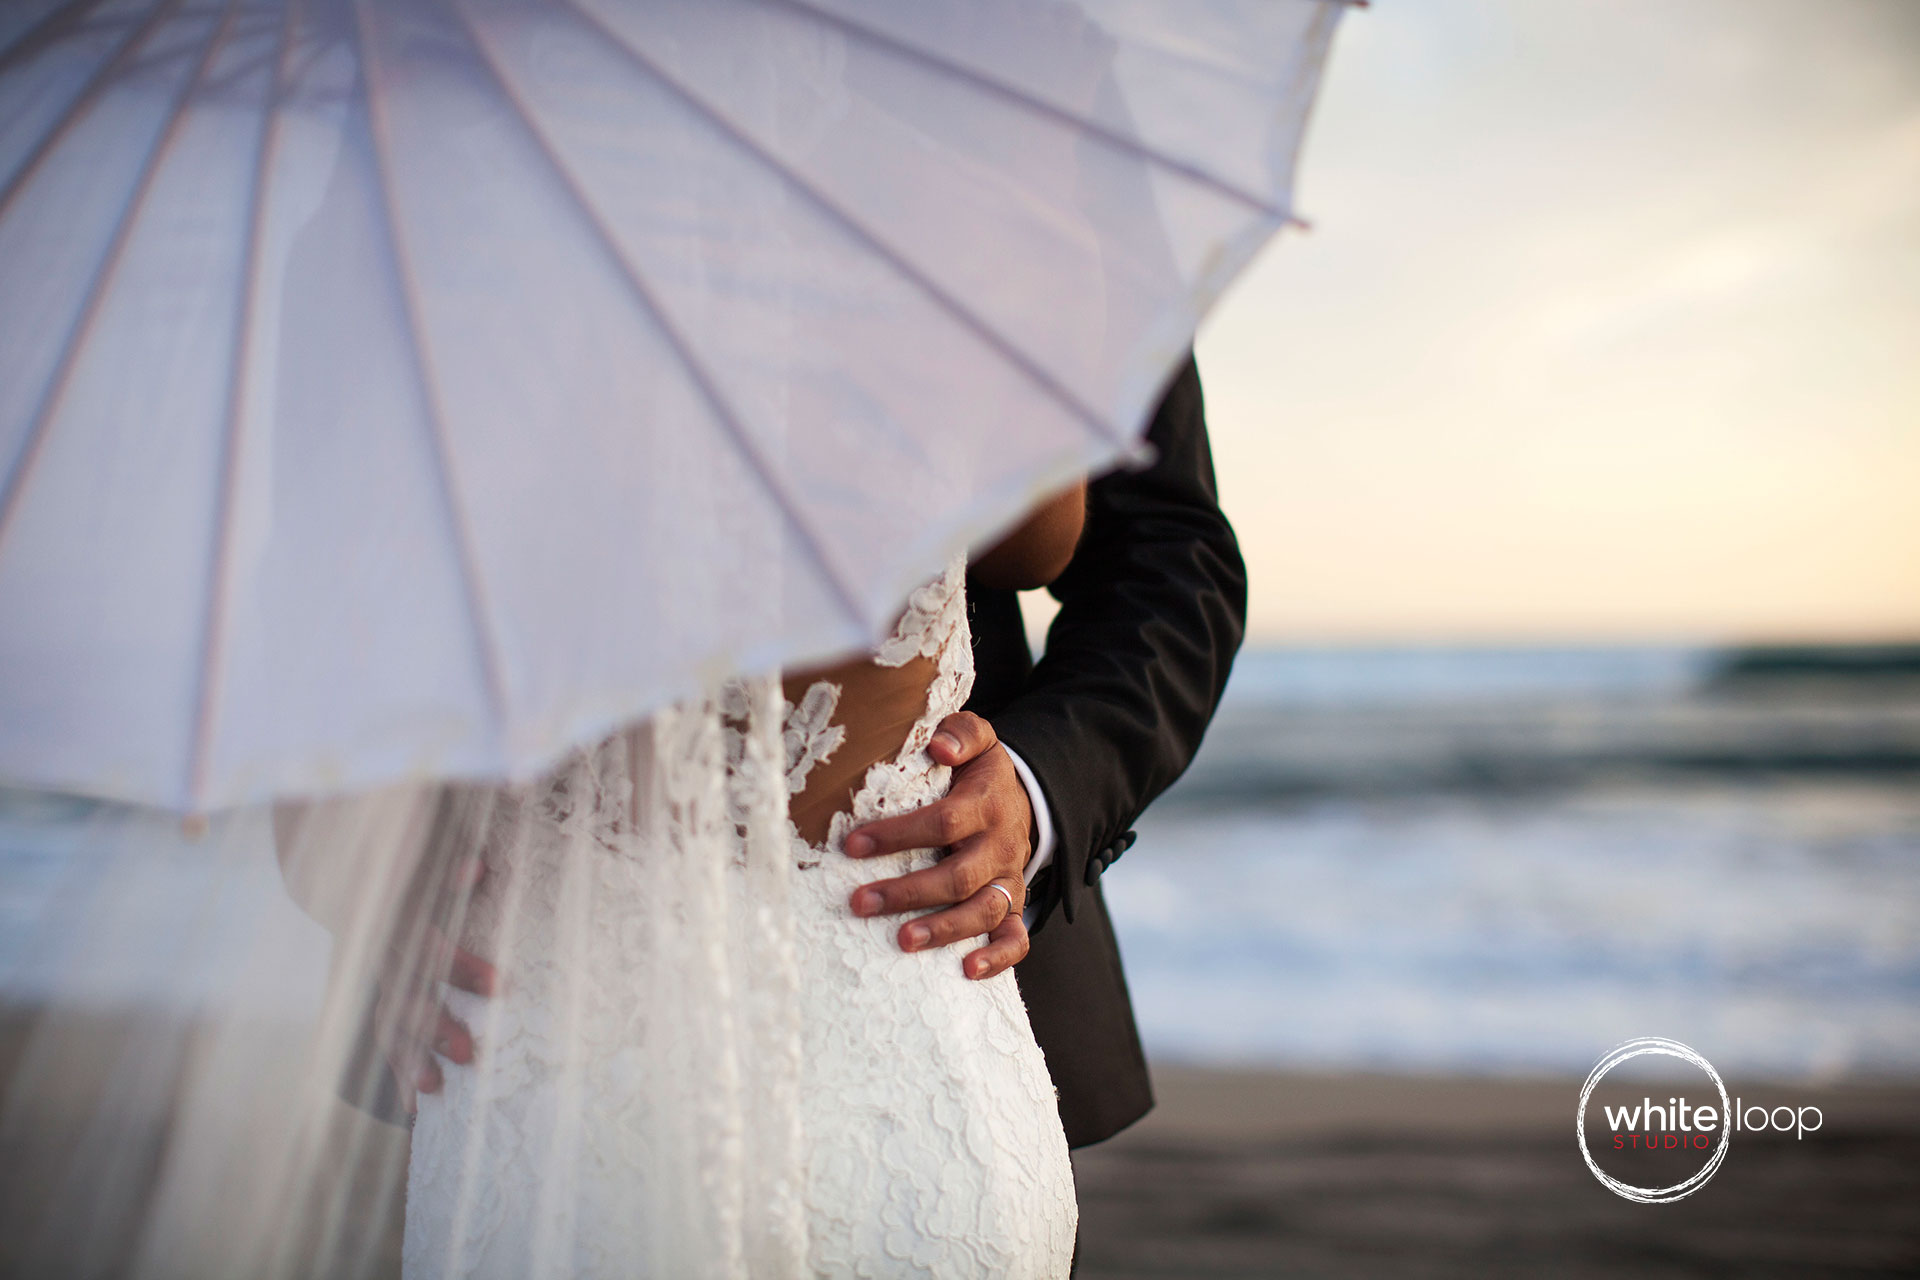 The groom holding the waist bride who carries an umbrella along the beach.